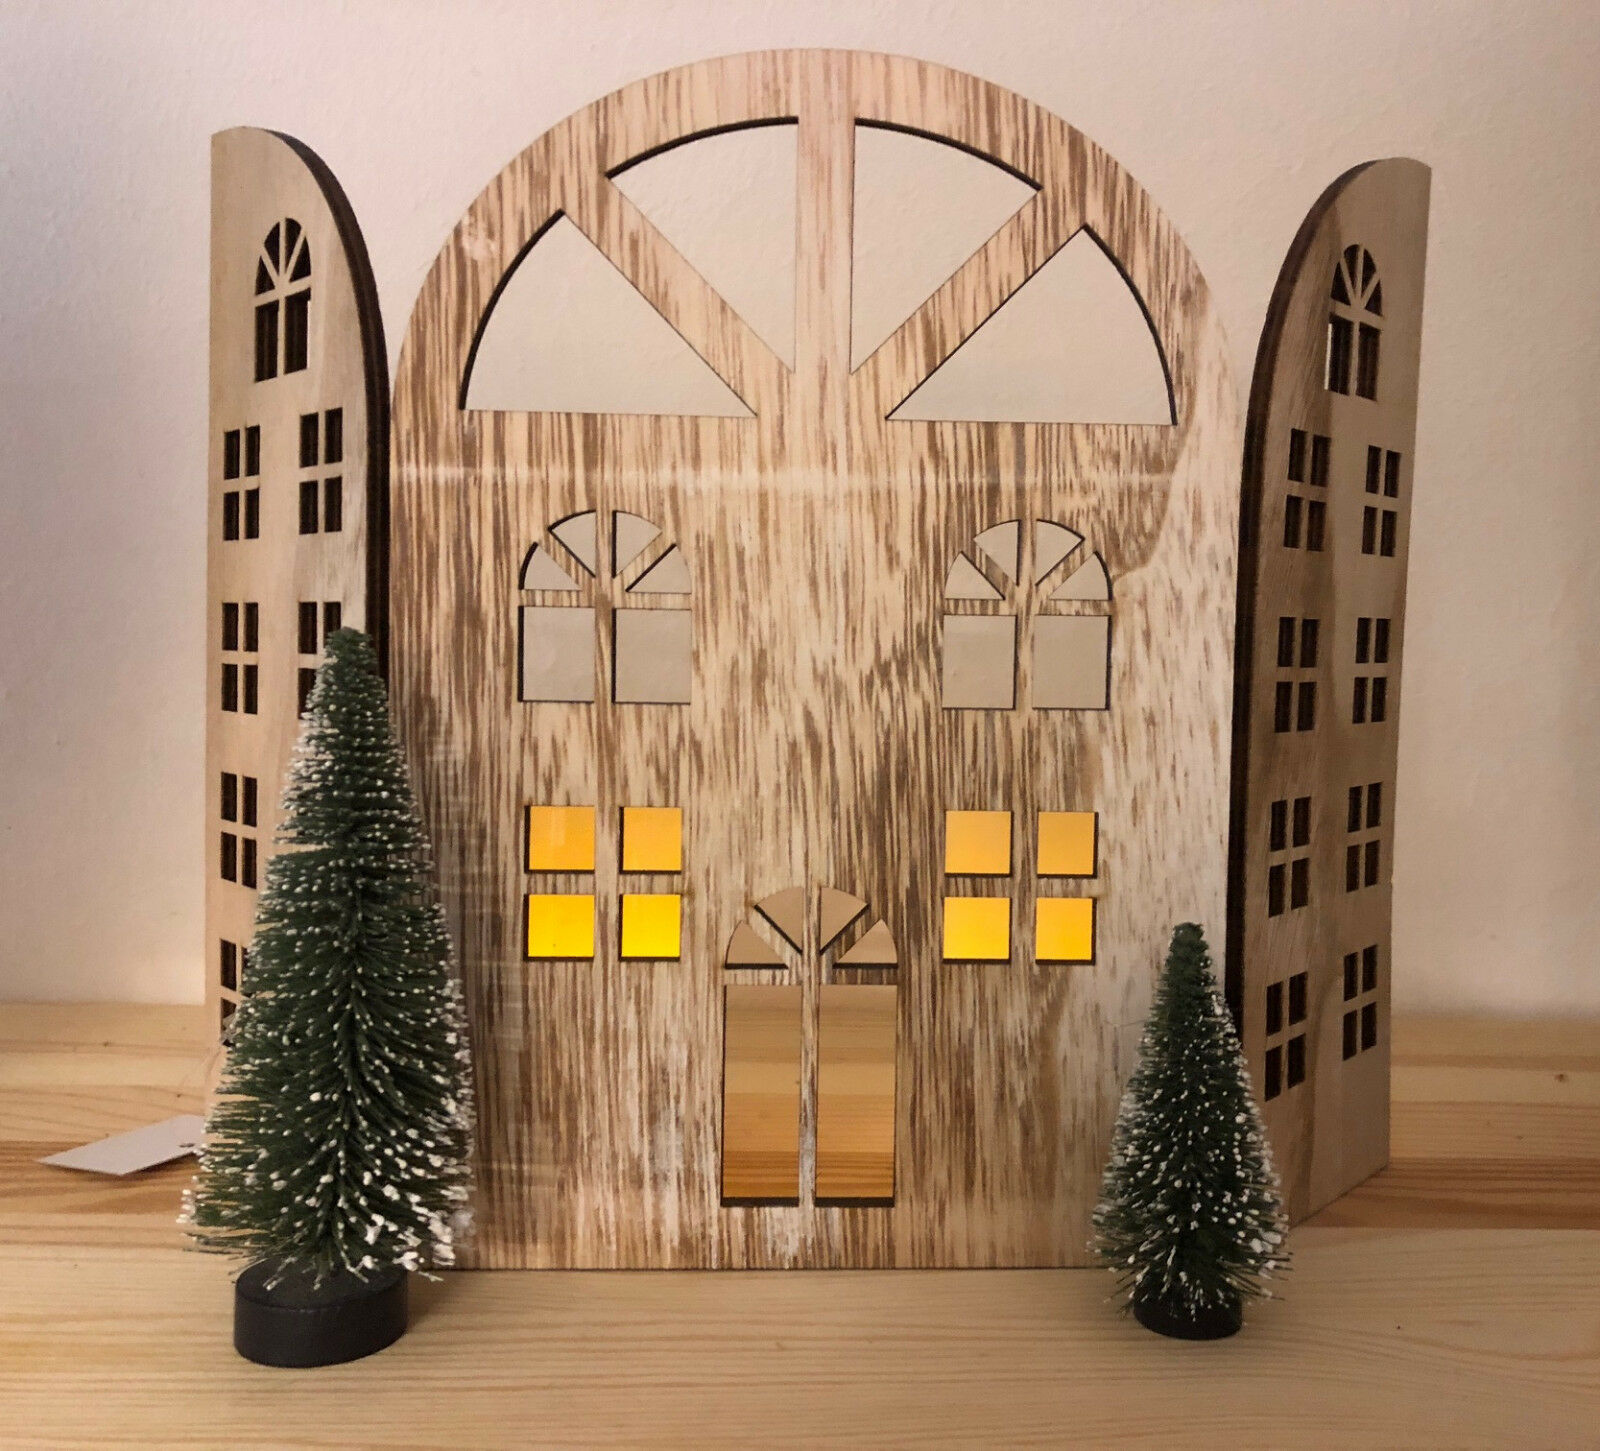 holzhaus zum aufstellen weihnachtsdeko xmas eur 7 75 picclick de. Black Bedroom Furniture Sets. Home Design Ideas